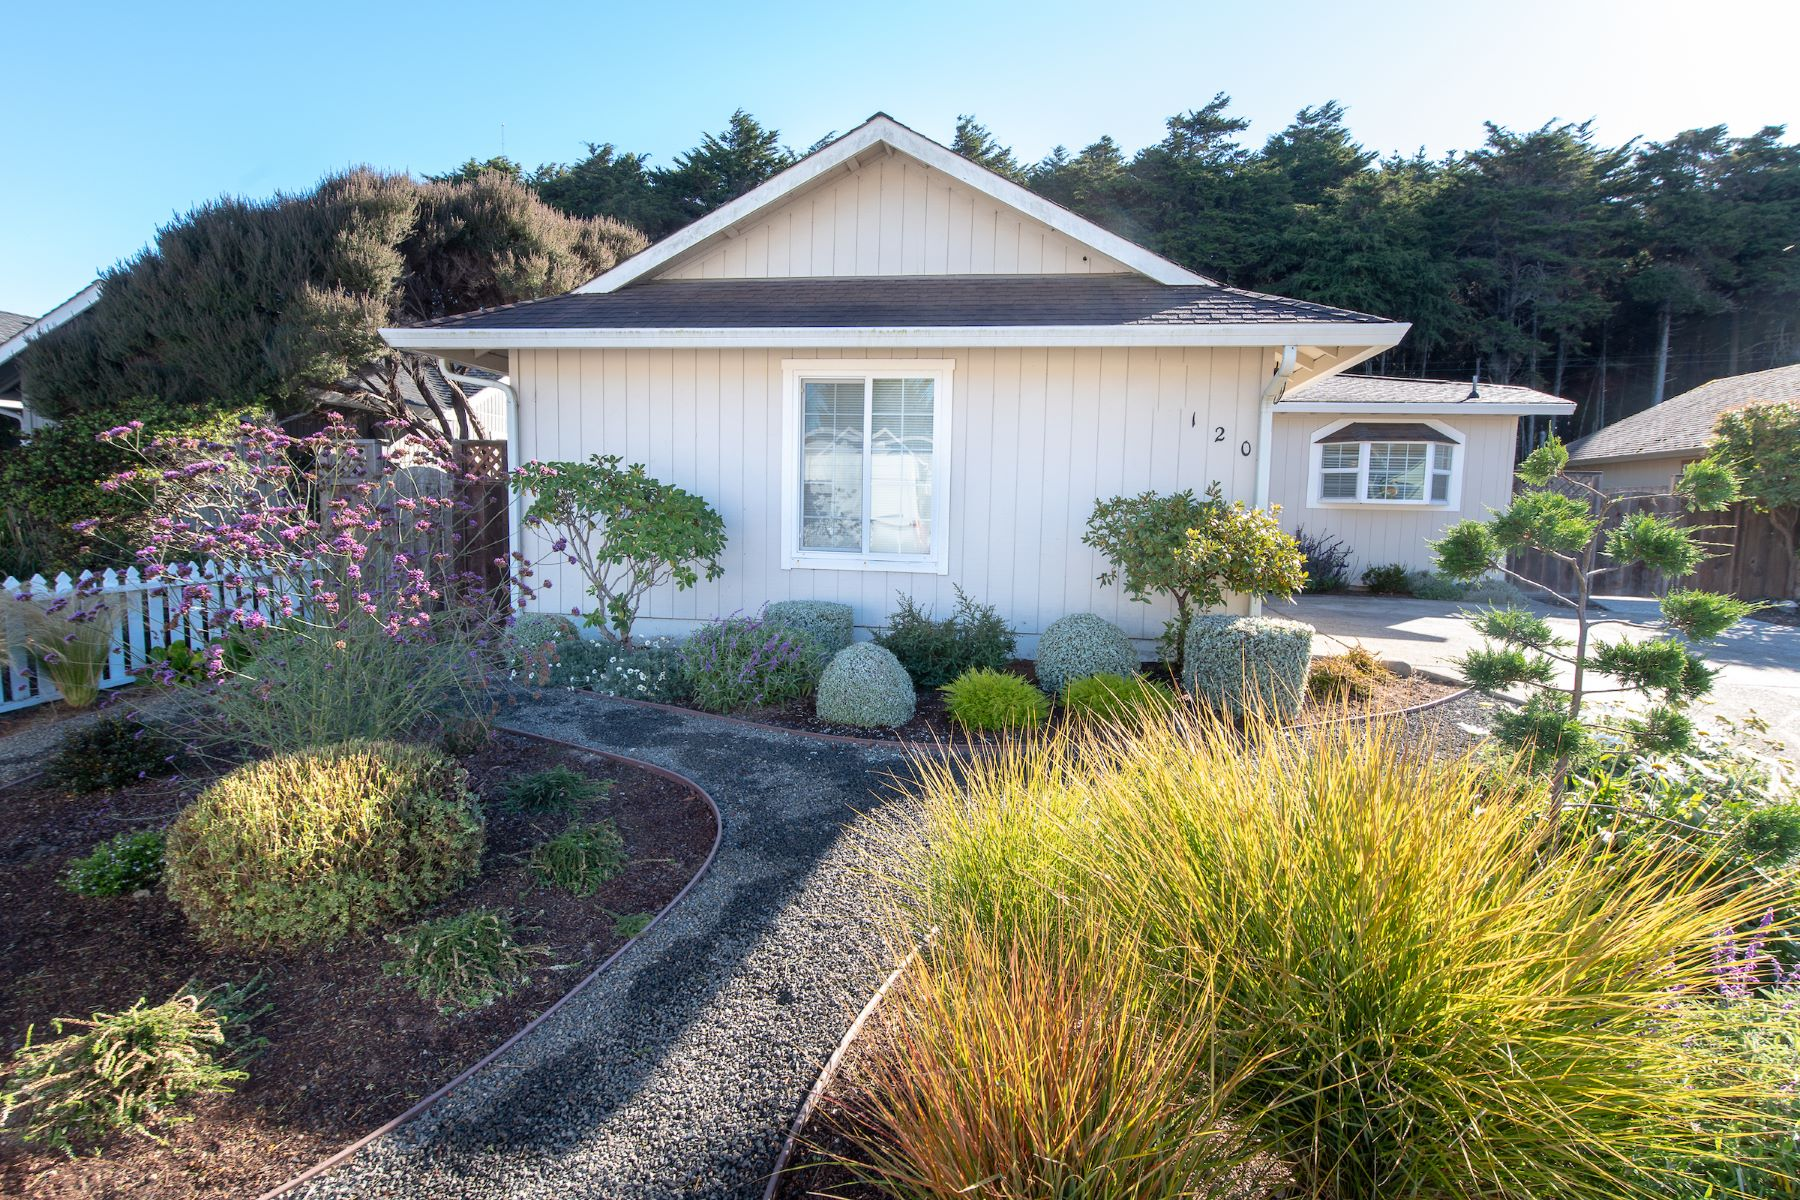 Property for Sale at Peaceful Gardens 120 Hocker Lane Fort Bragg, California 95437 United States